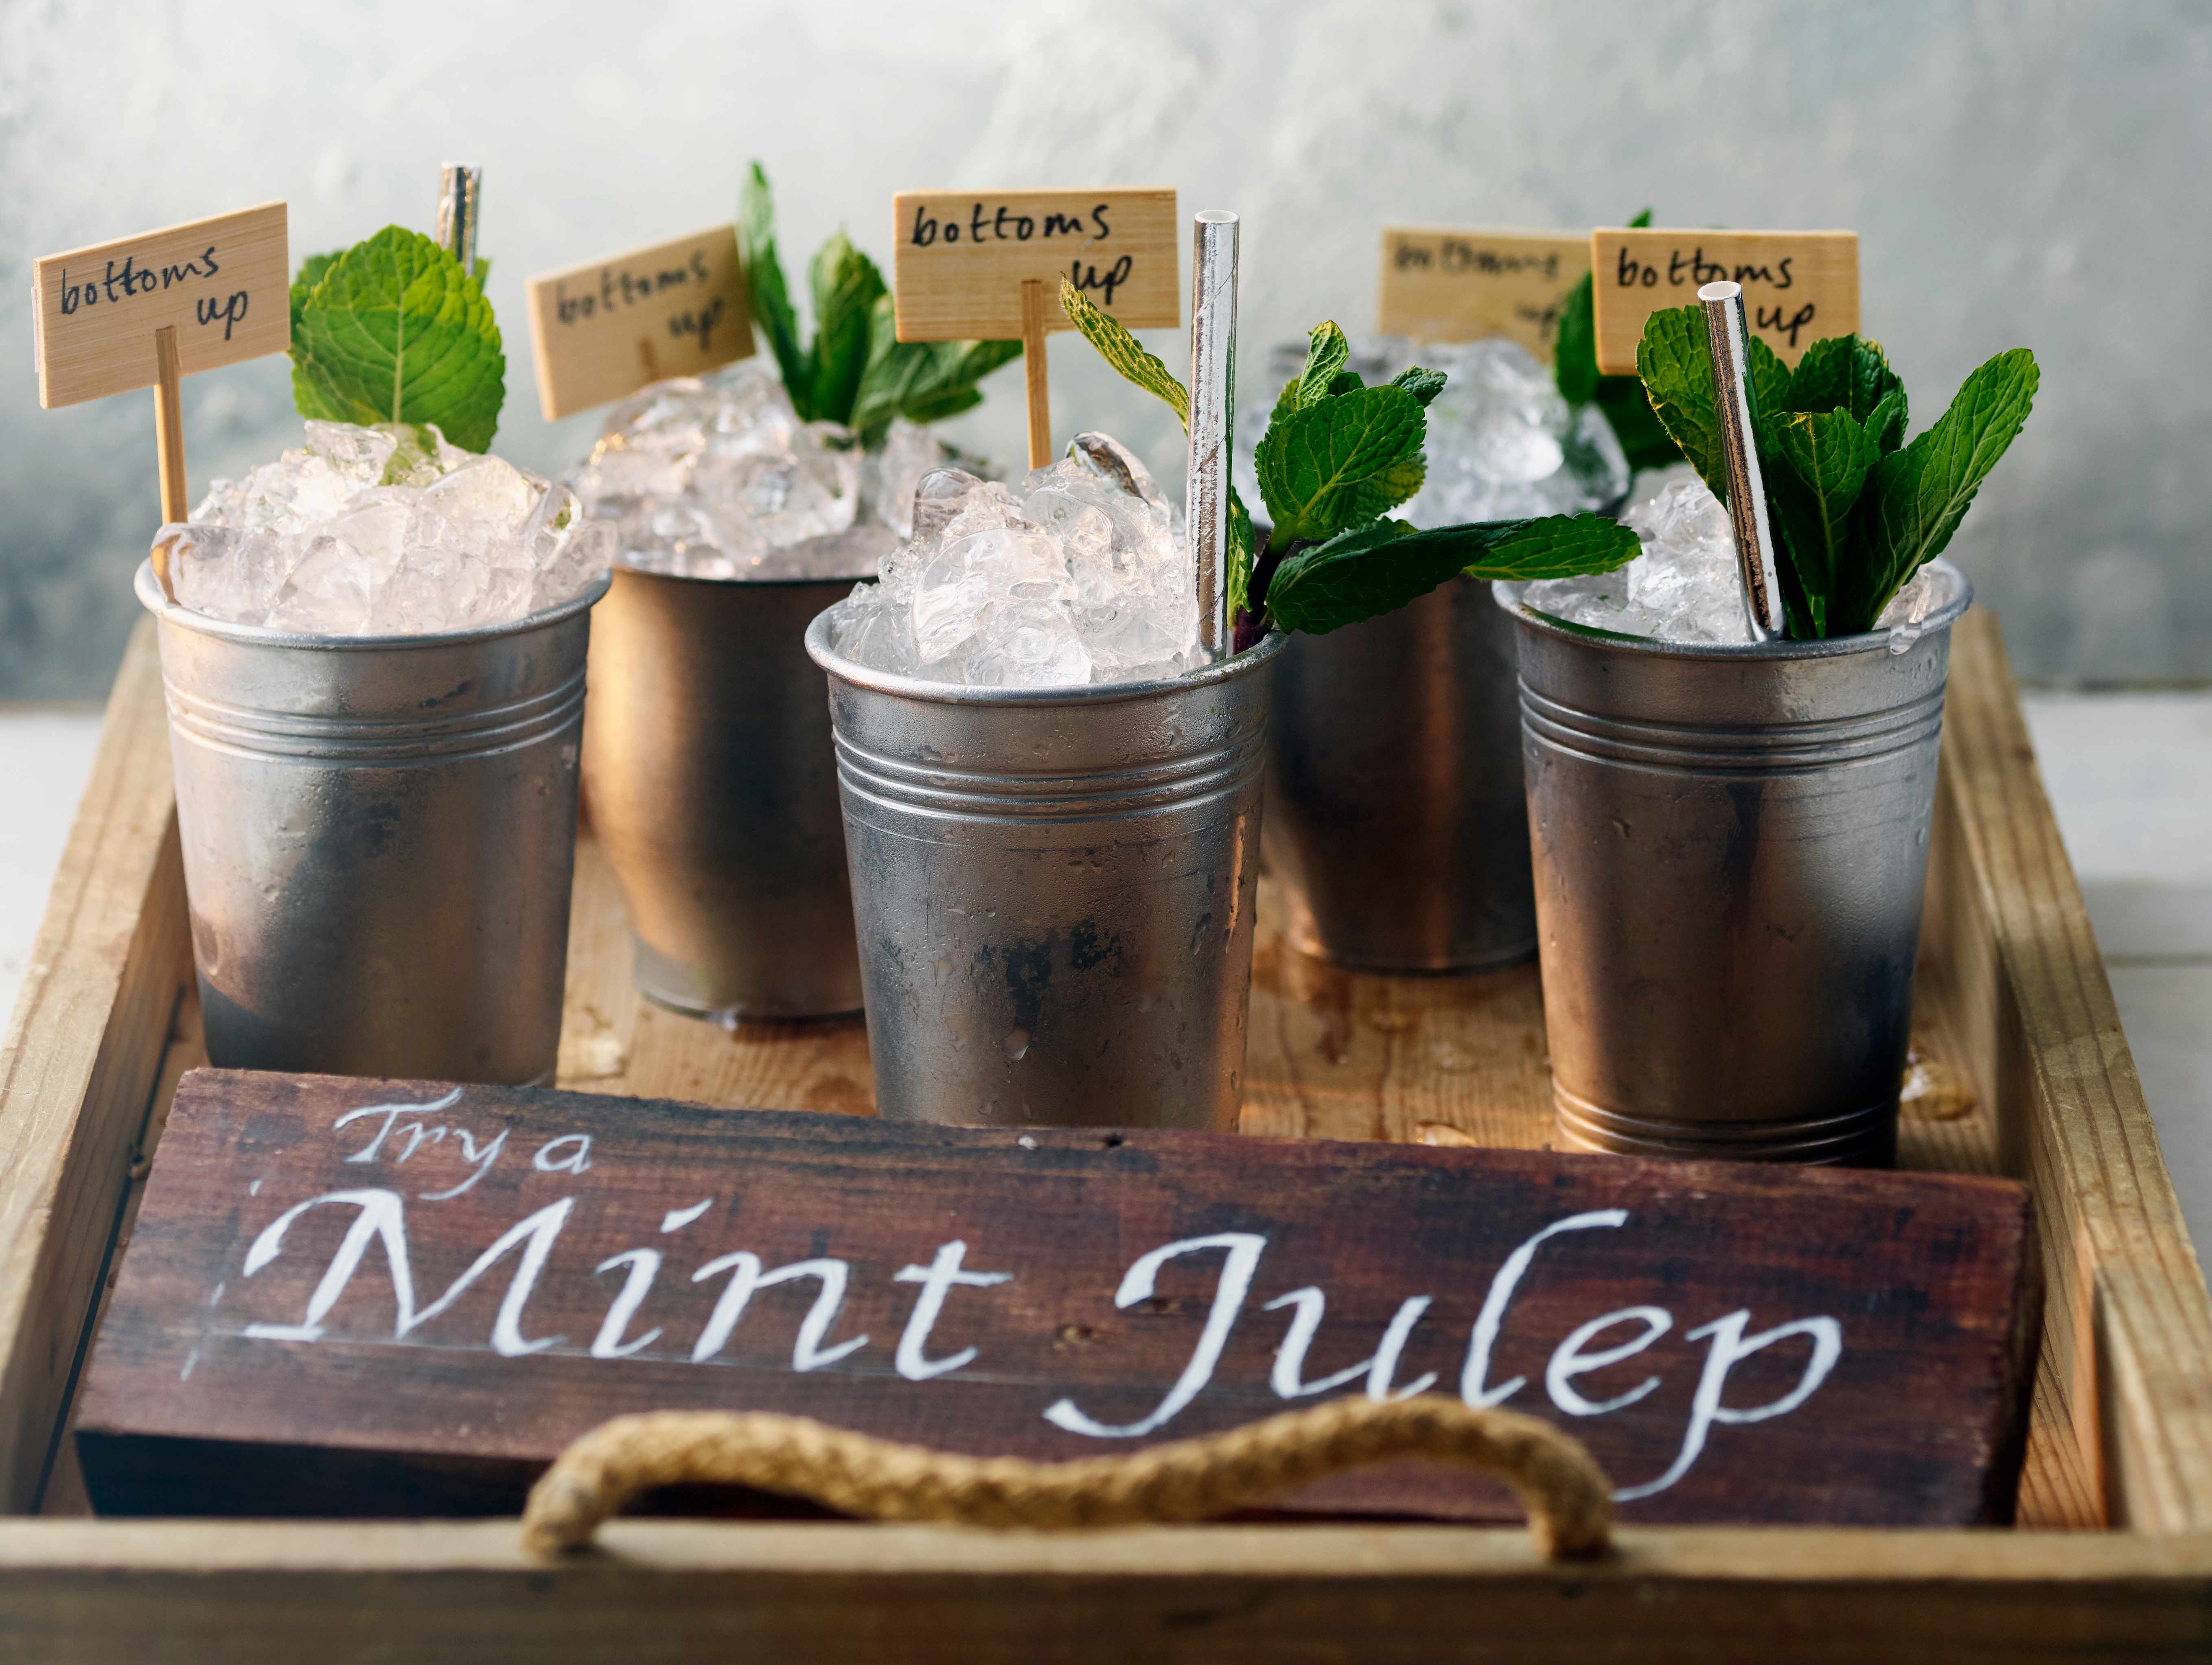 Peach and Mint Julep